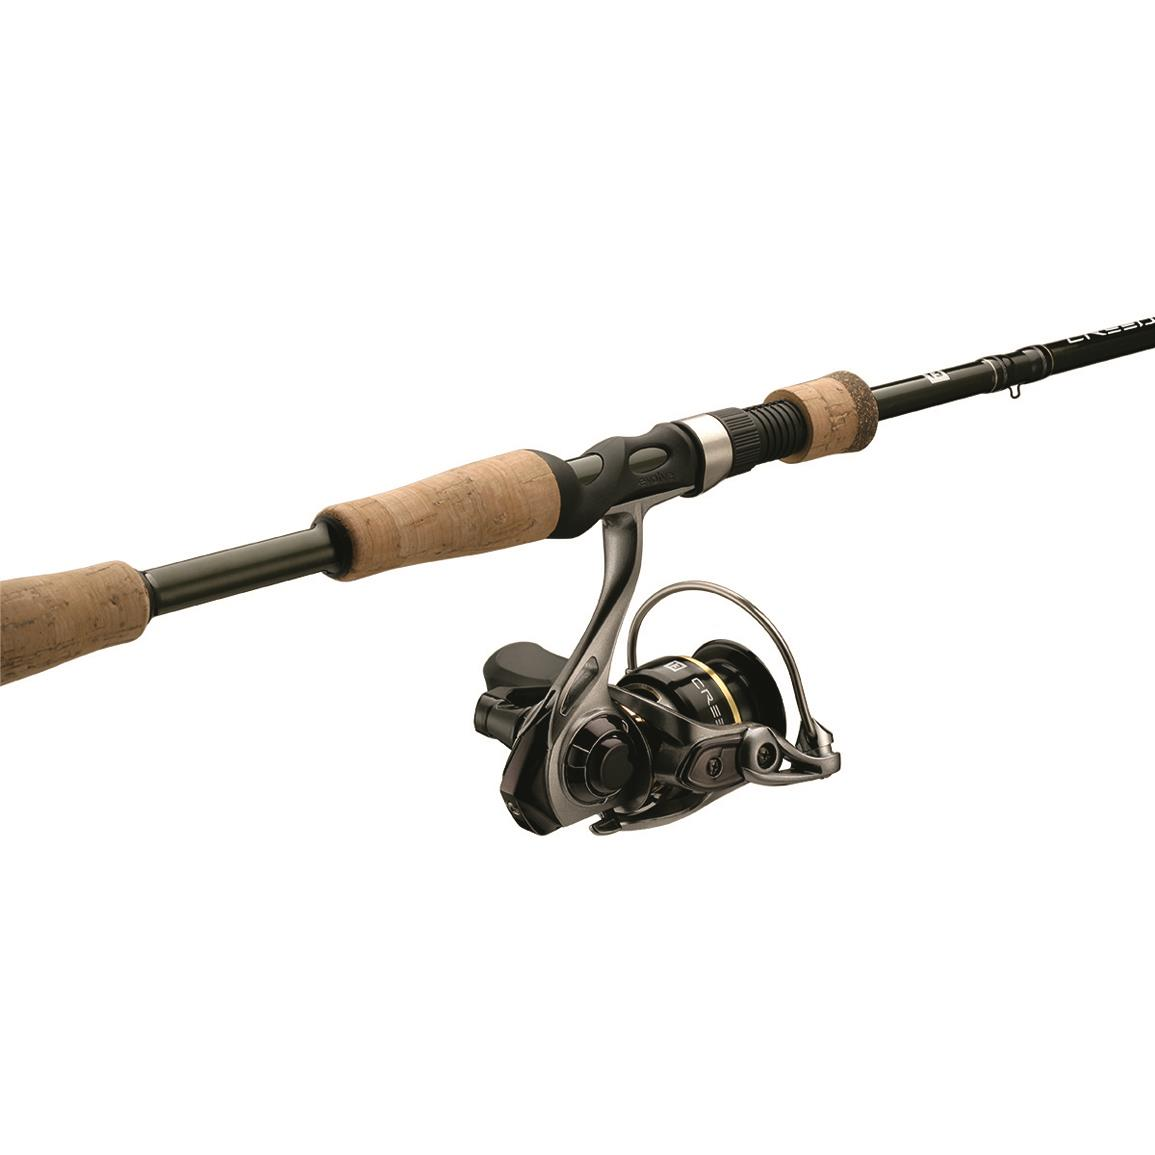 13 Fishing Creed K Spinning Rod and Reel Combo